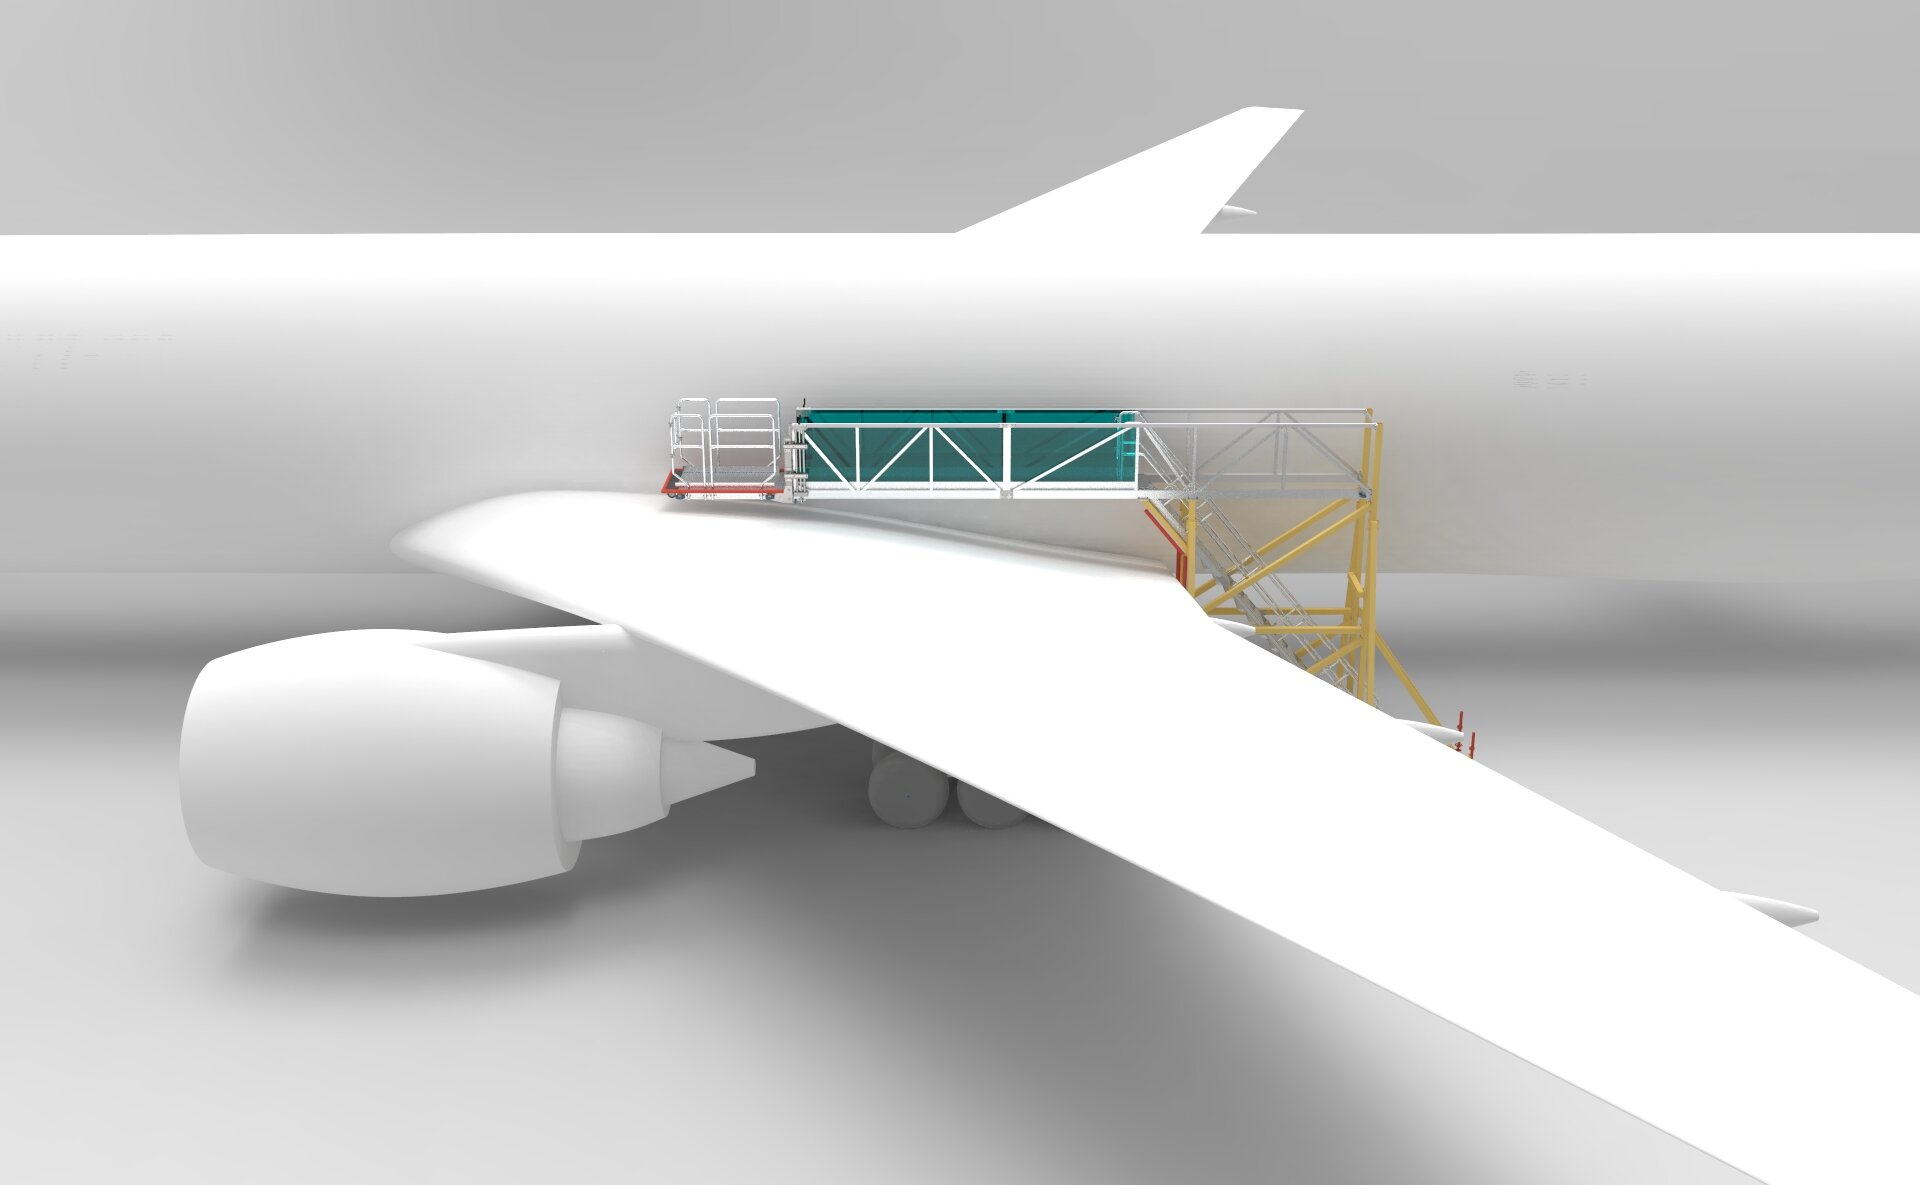 Overwing Access Projects Presentation isometric view